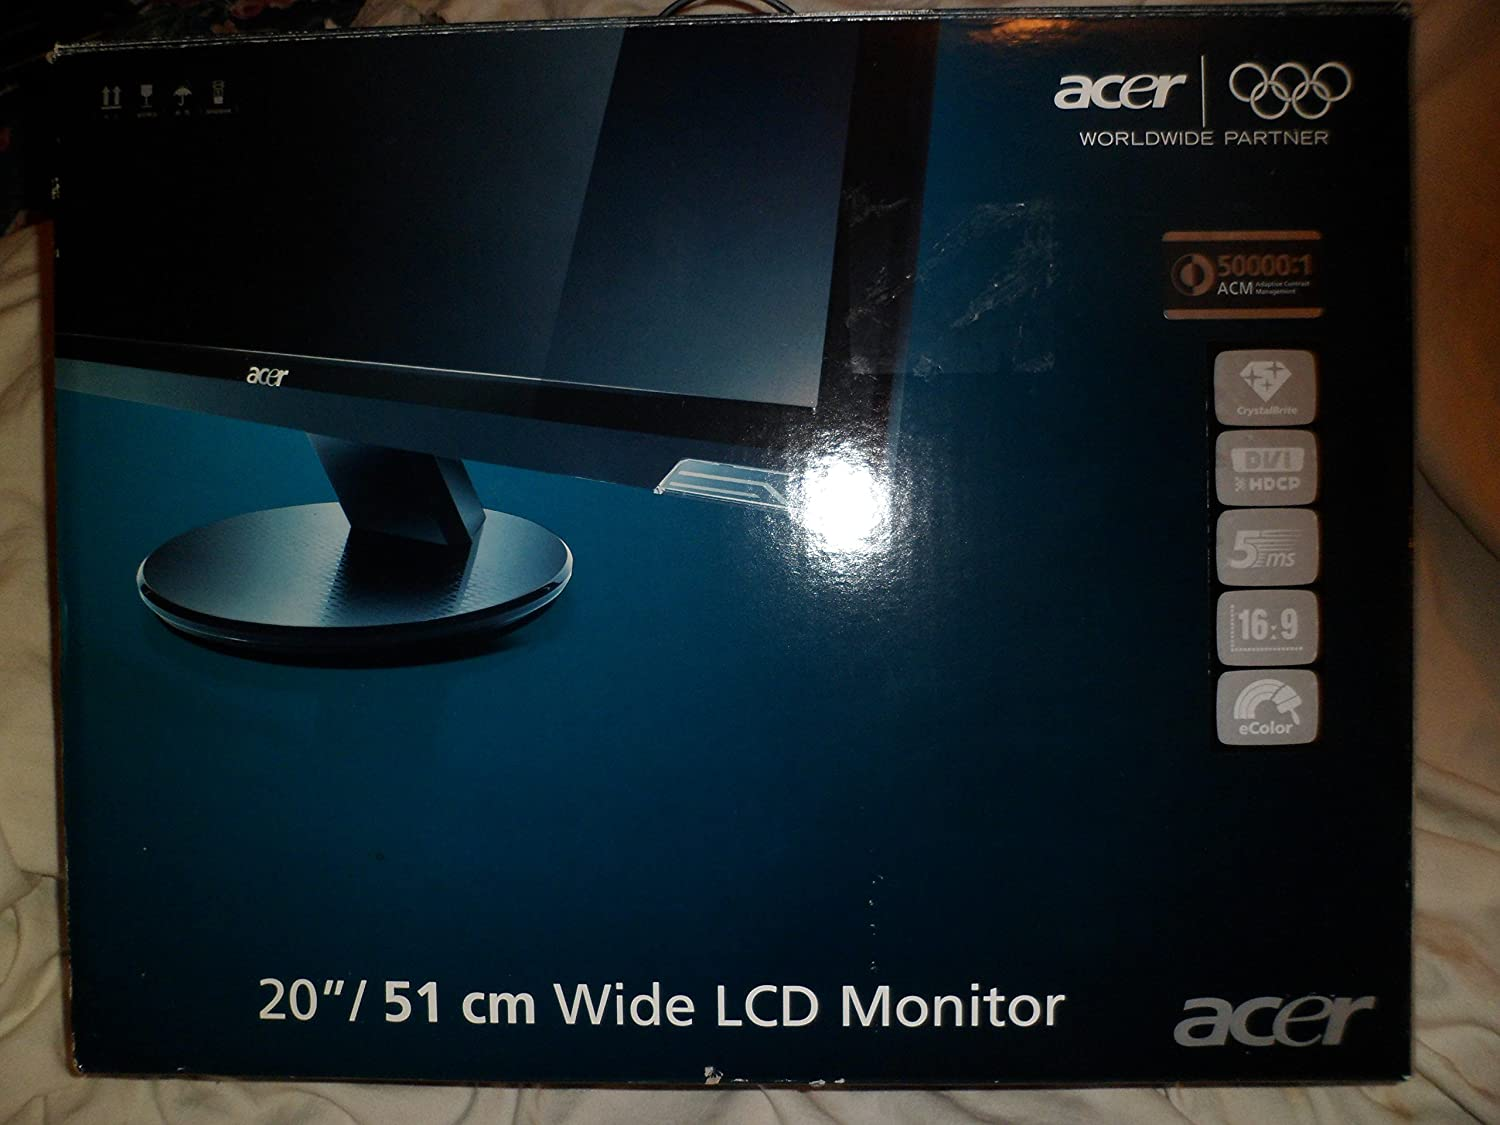 Amazon.com: Acer G205HV bd 20-inch Widescreen Flat-Panel LCD Monitor:  Computers & Accessories